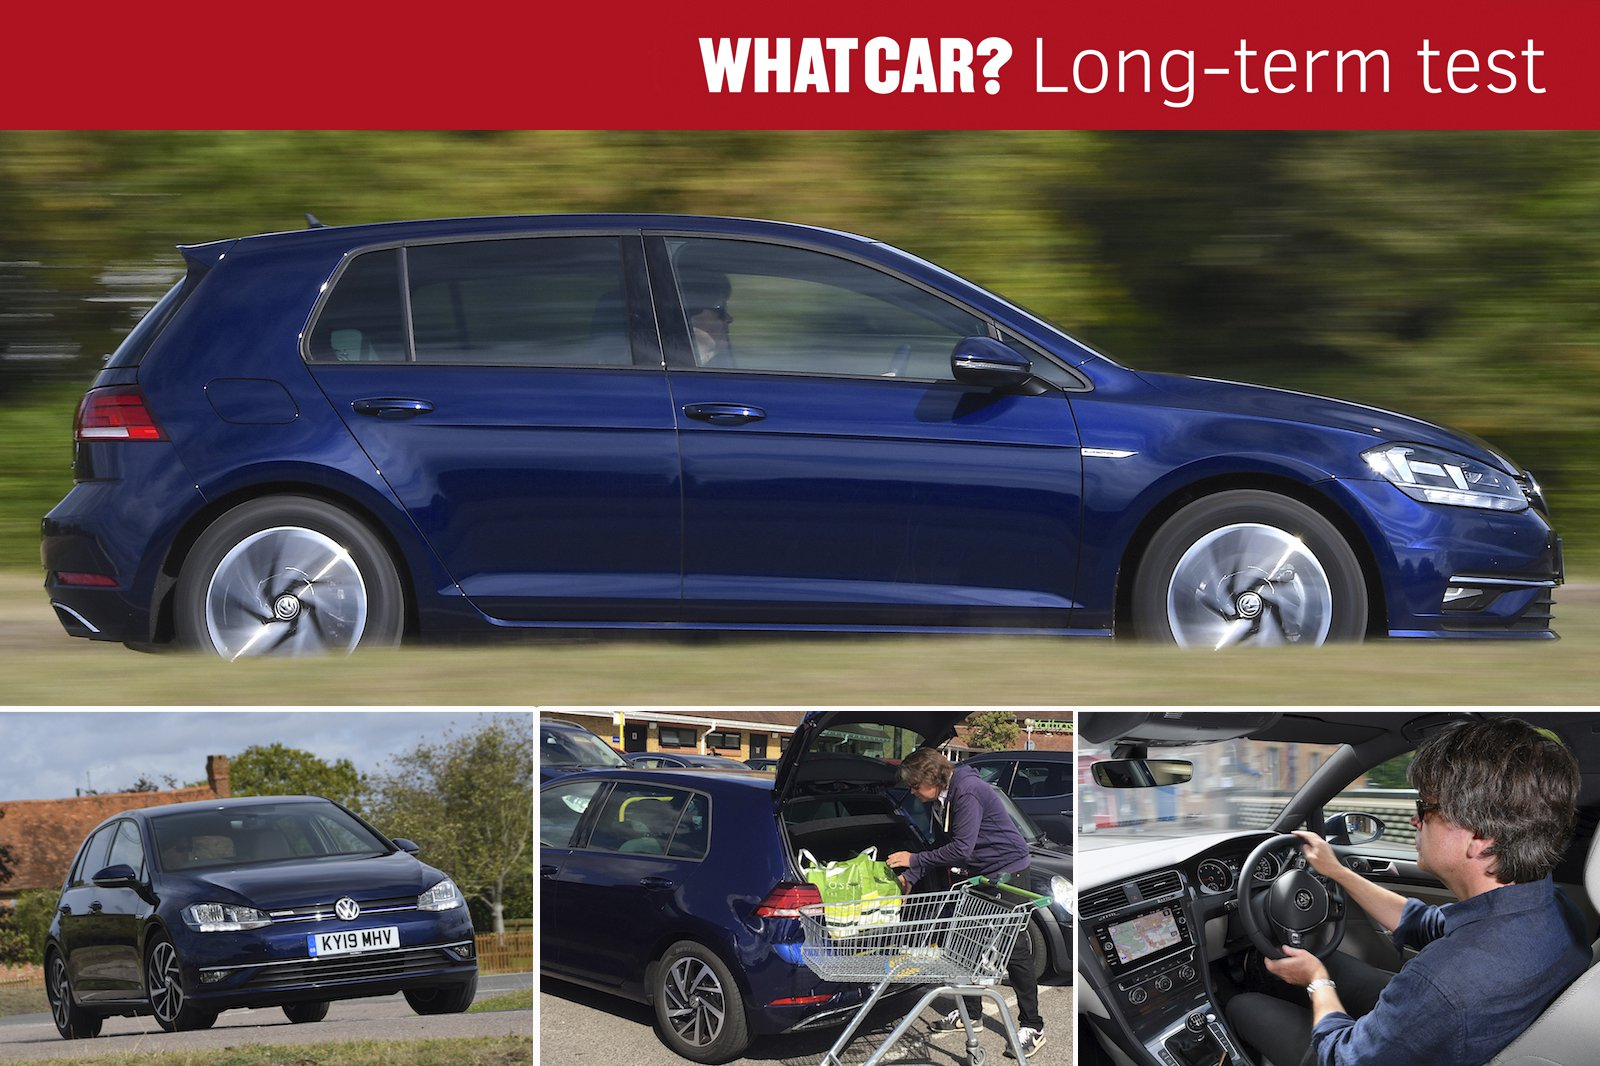 Volkswagen Golf long-termer